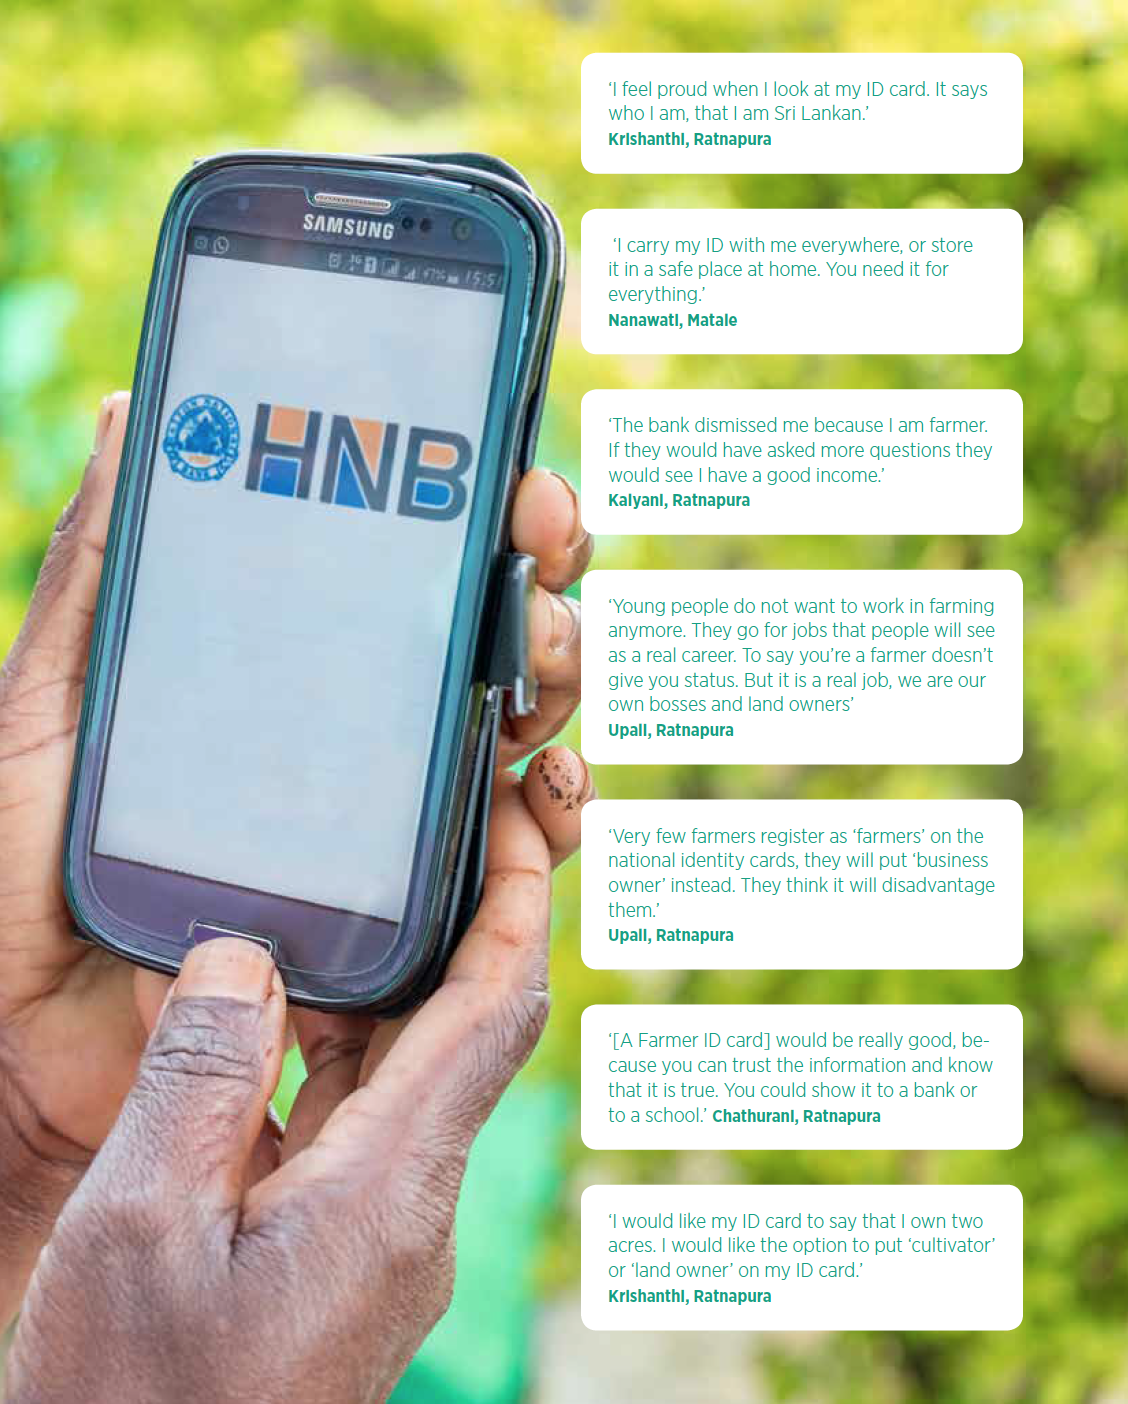 Source: Digital Identity for Smallholder Farmers: Insights from Sri Lanka